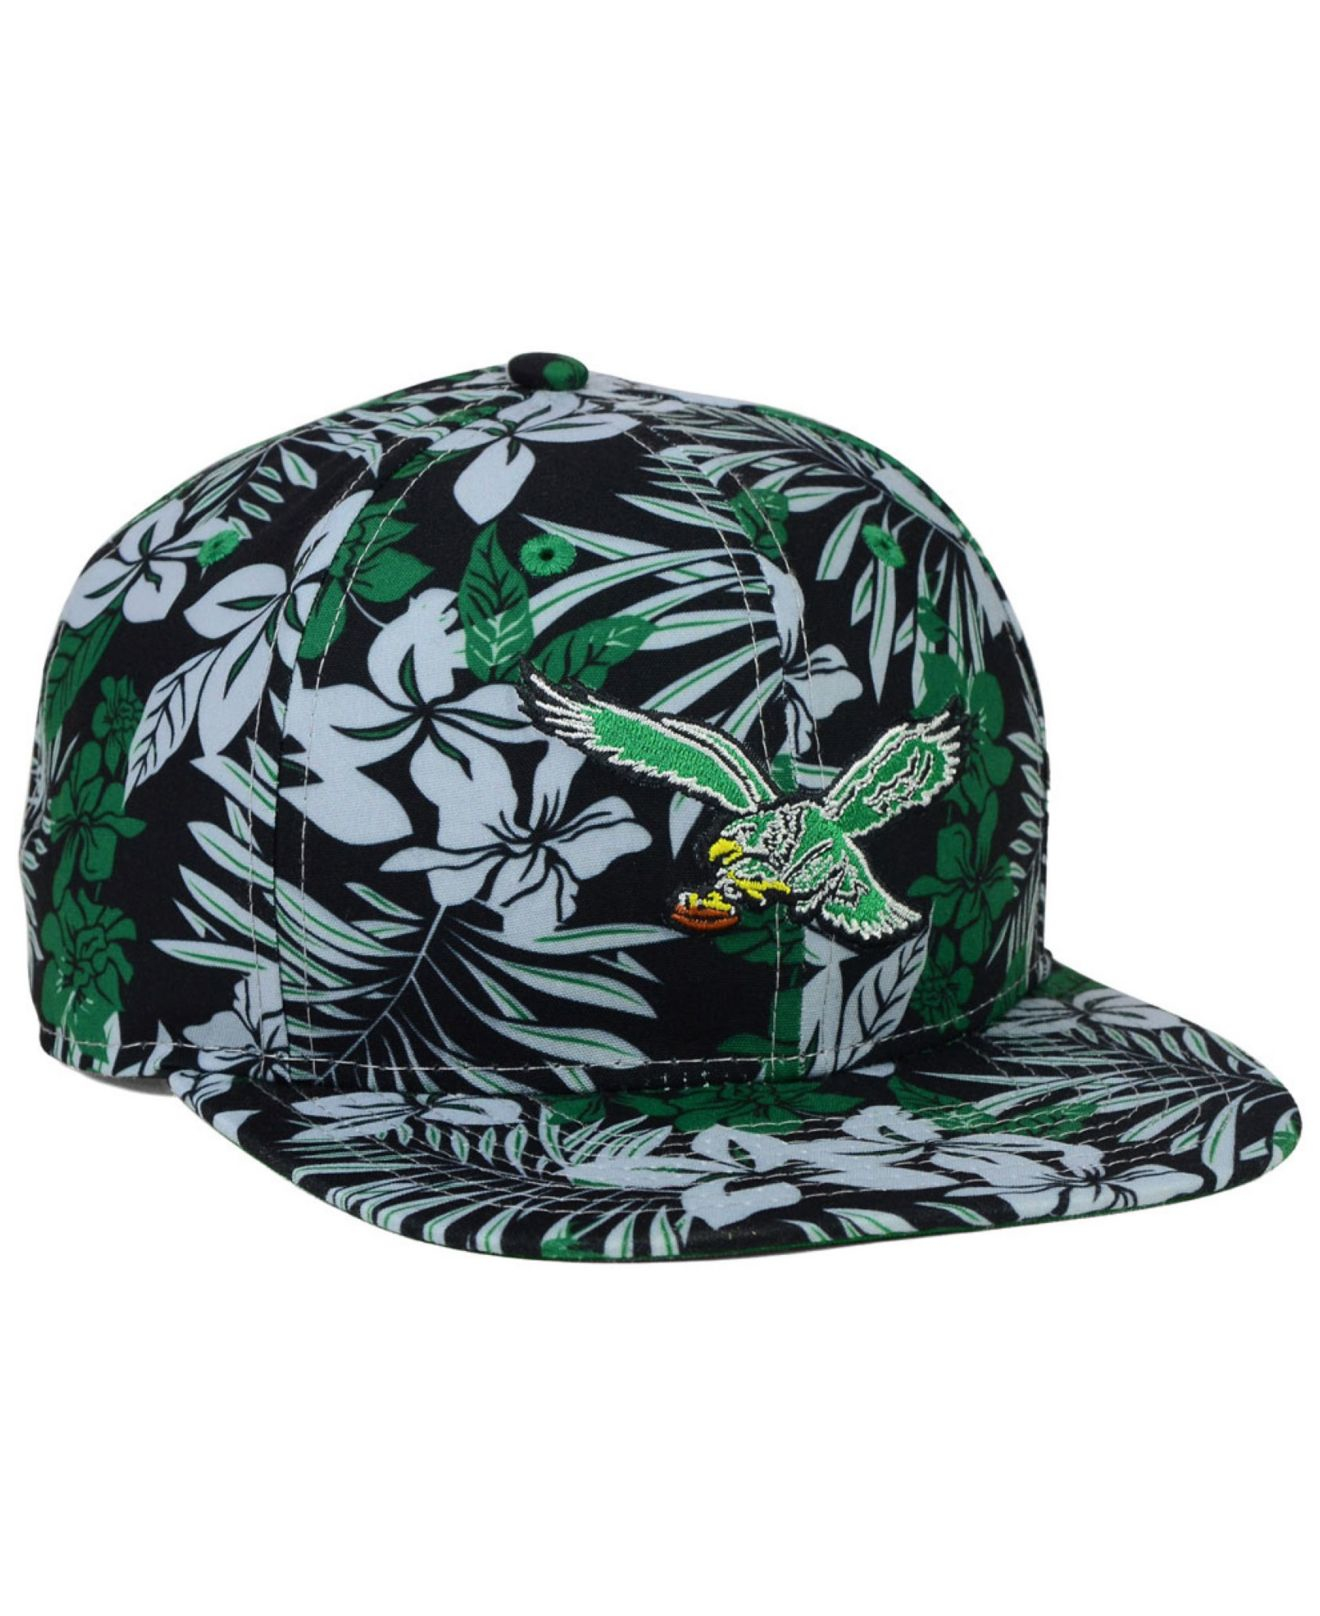 half off 7657f bf0b8 KTZ Philadelphia Eagles Wowie Snapback Cap in Green for Men - Lyst